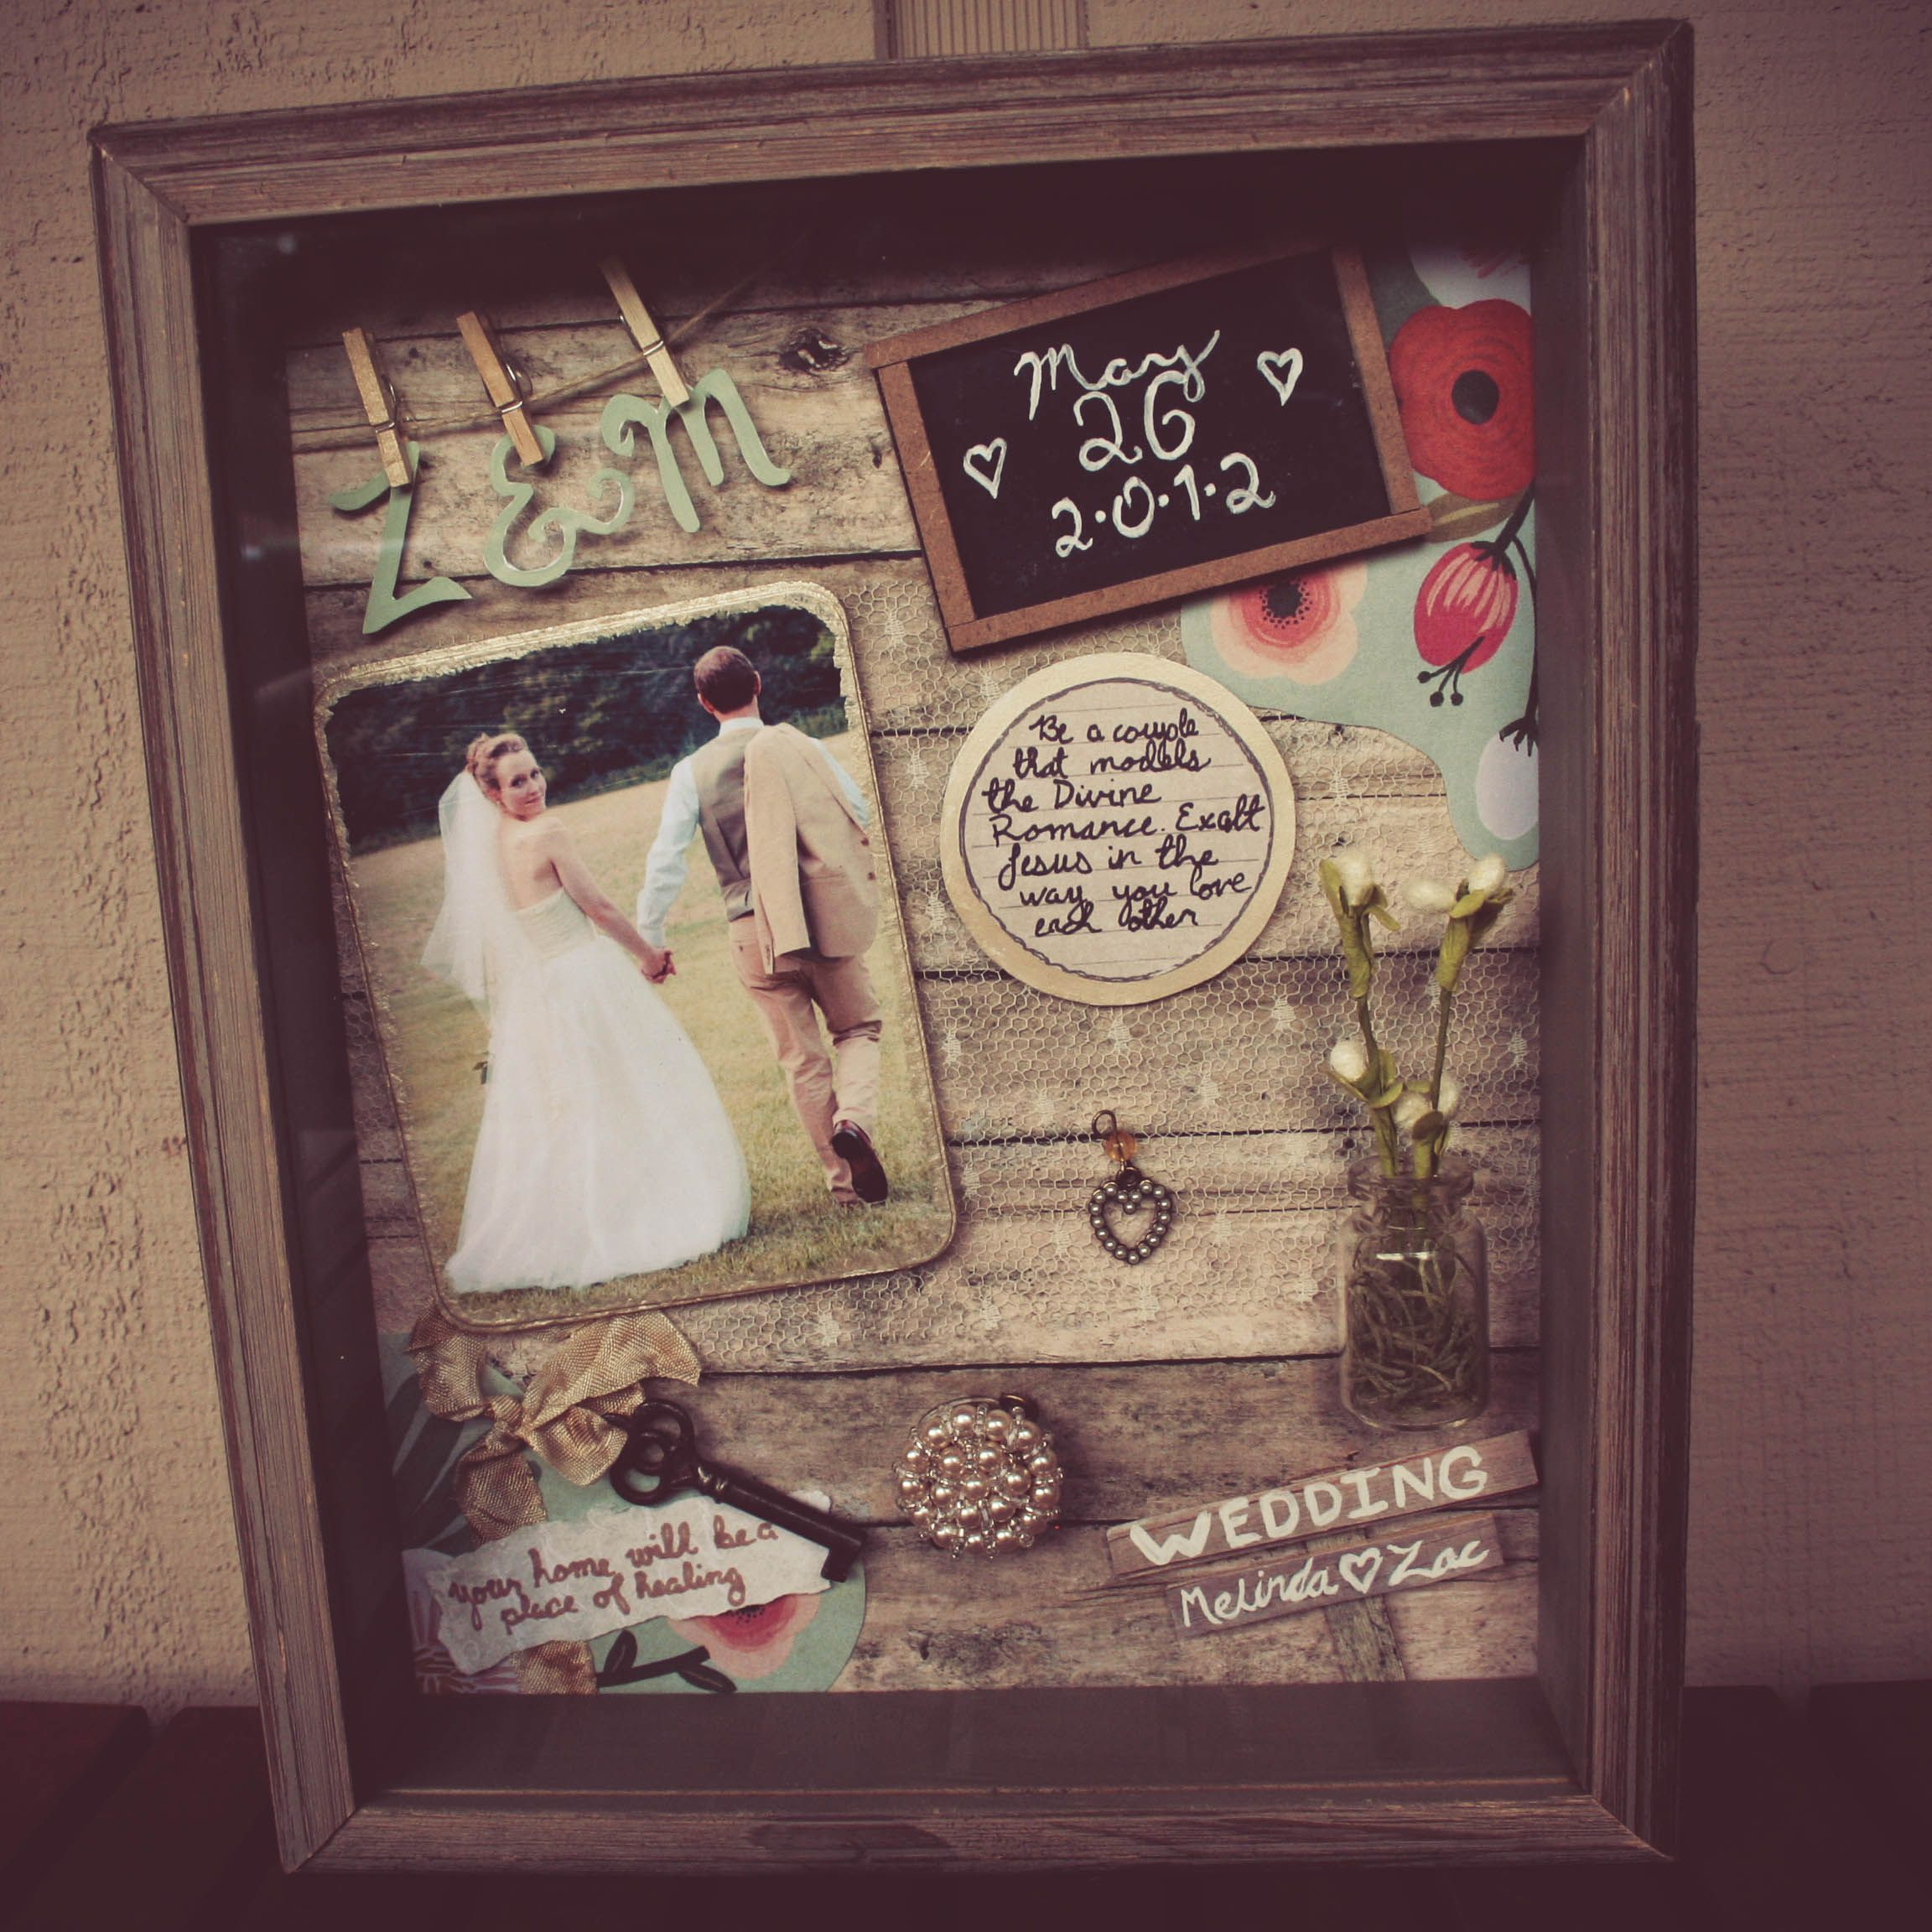 How To Decorate A Shadow Box Adorable Shadow Box Ideas To Keep Your Memories And How To Make It  Wedding Design Inspiration